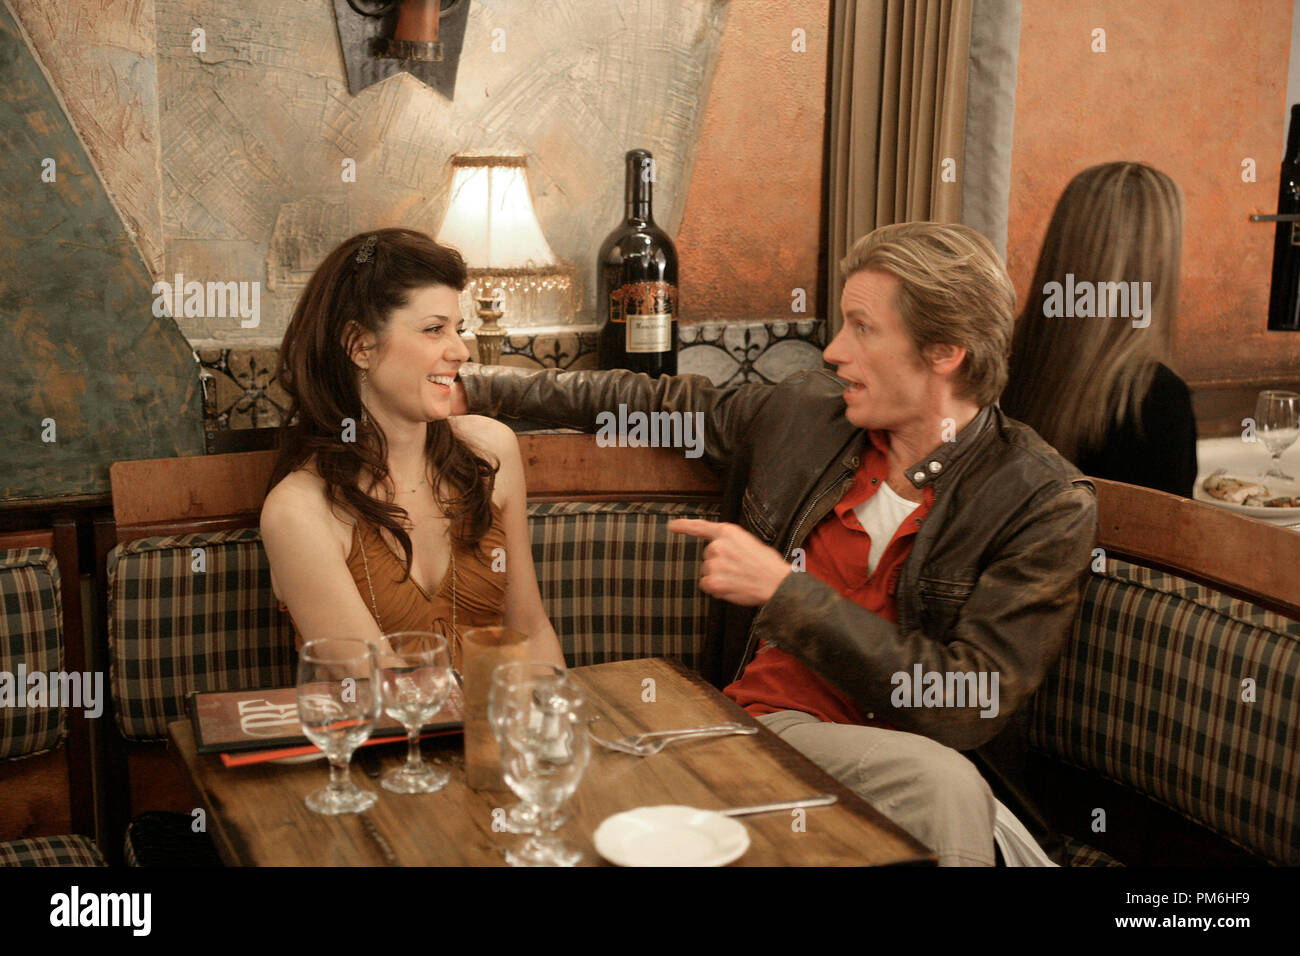 Film Still from 'Rescue Me'   Marisa Tomei, Denis Leary 2007 - Stock Image